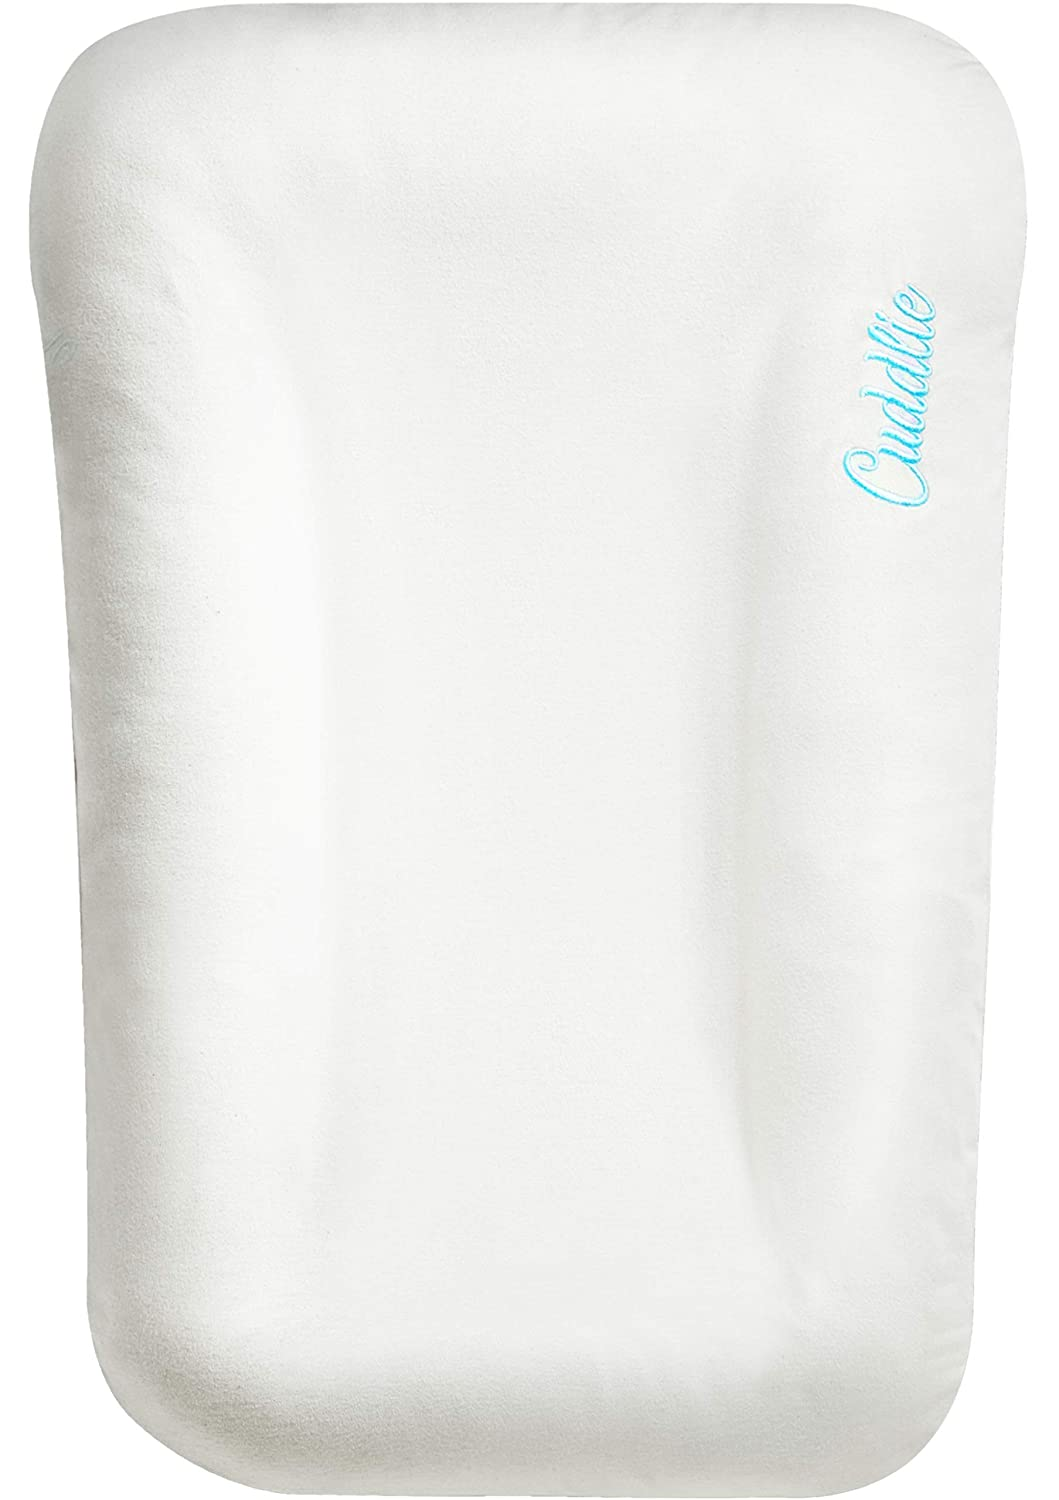 Top 10 Best Baby Lounger Pillow (2020 Reviews & Buying Guide) 7